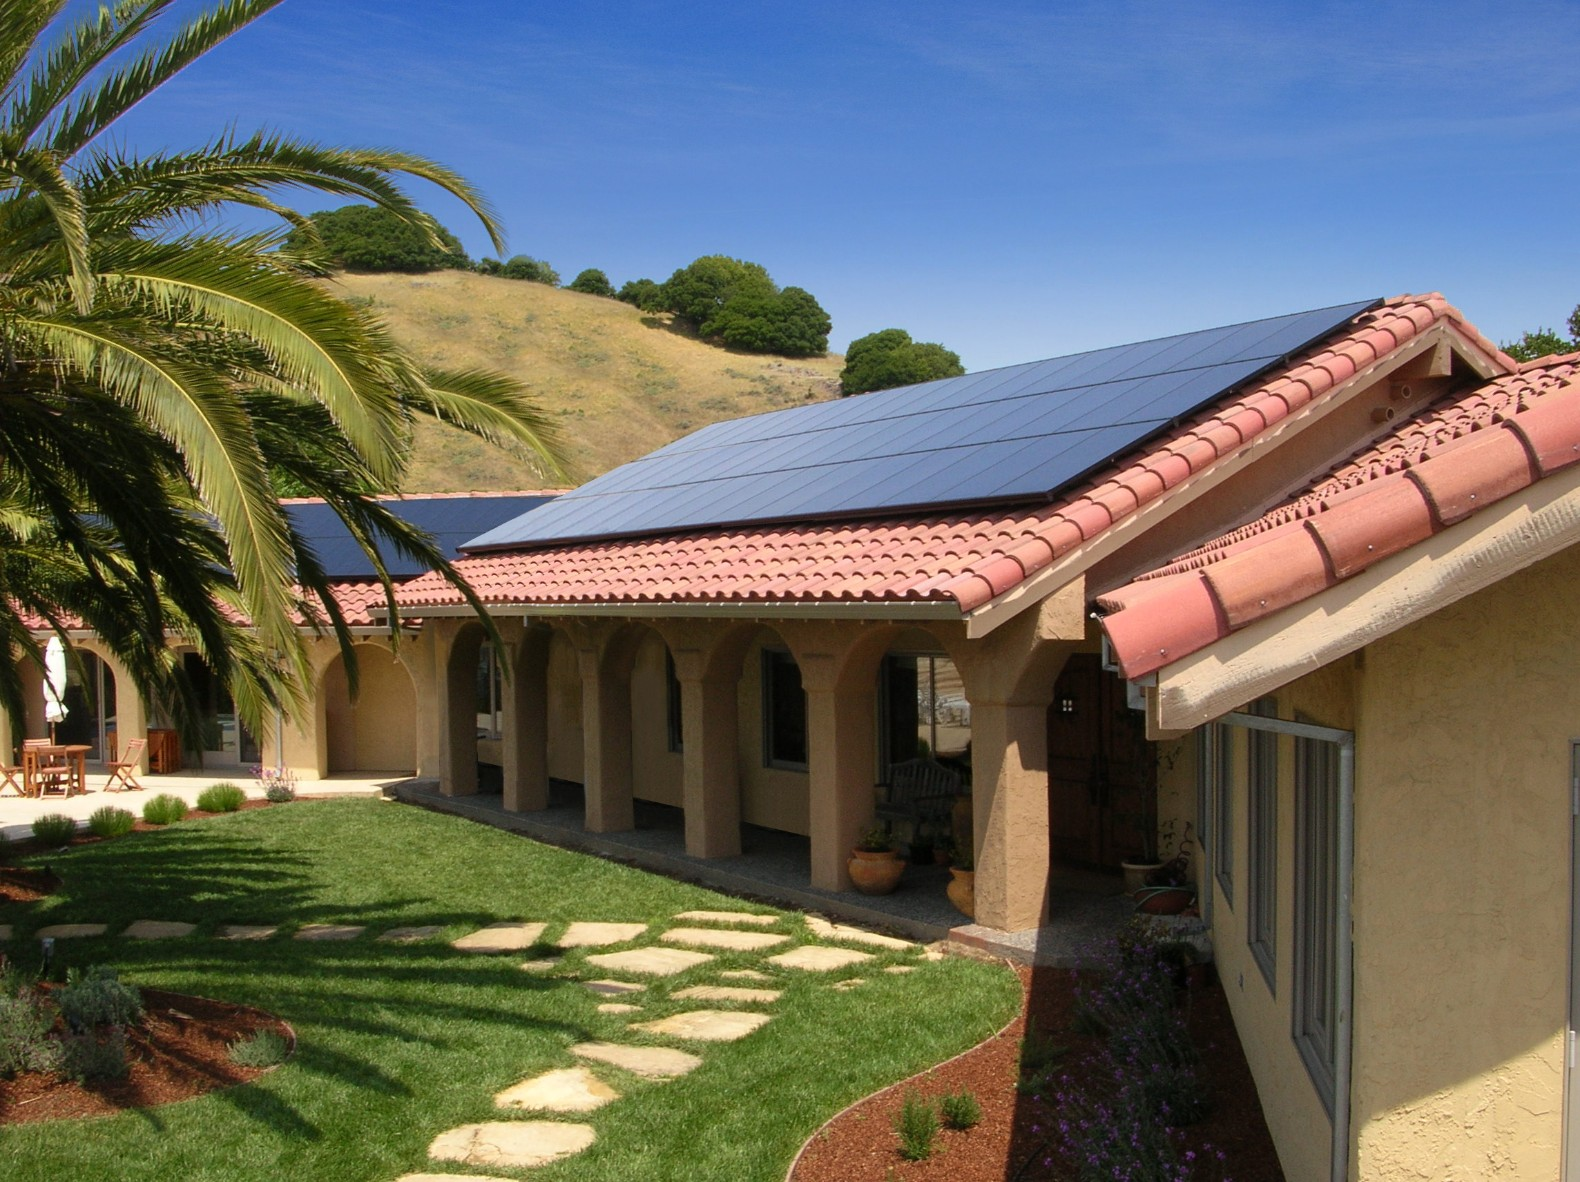 SunPower's new solar shingles are 15% more efficient than conventional photovoltaics